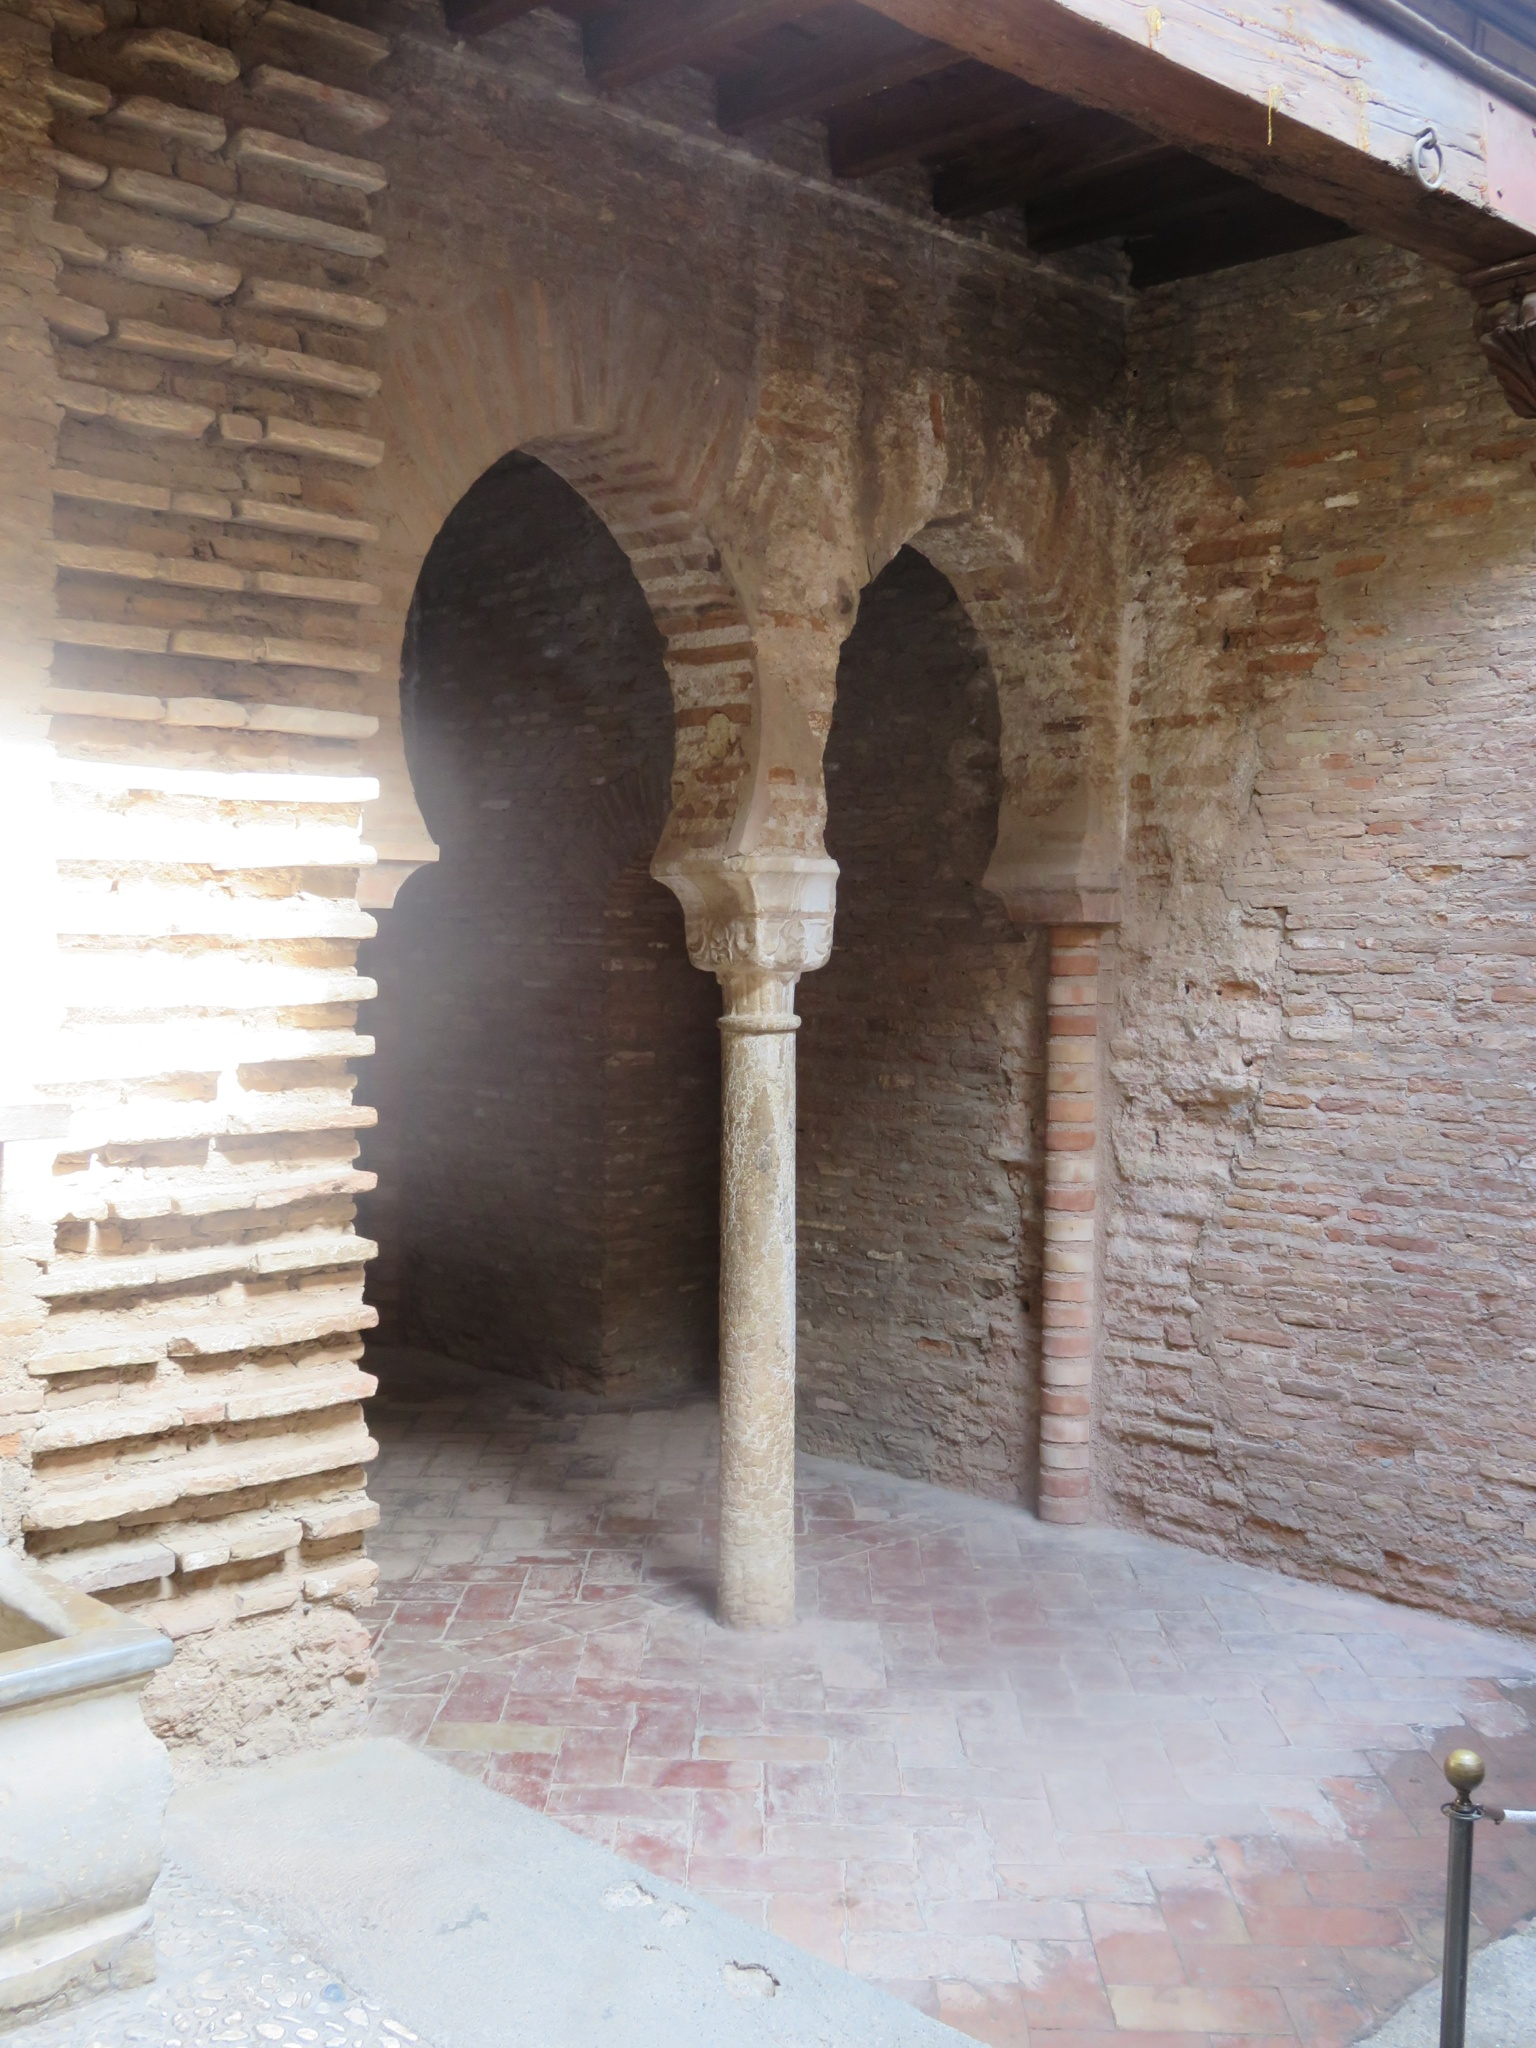 Hammam - Arab baths